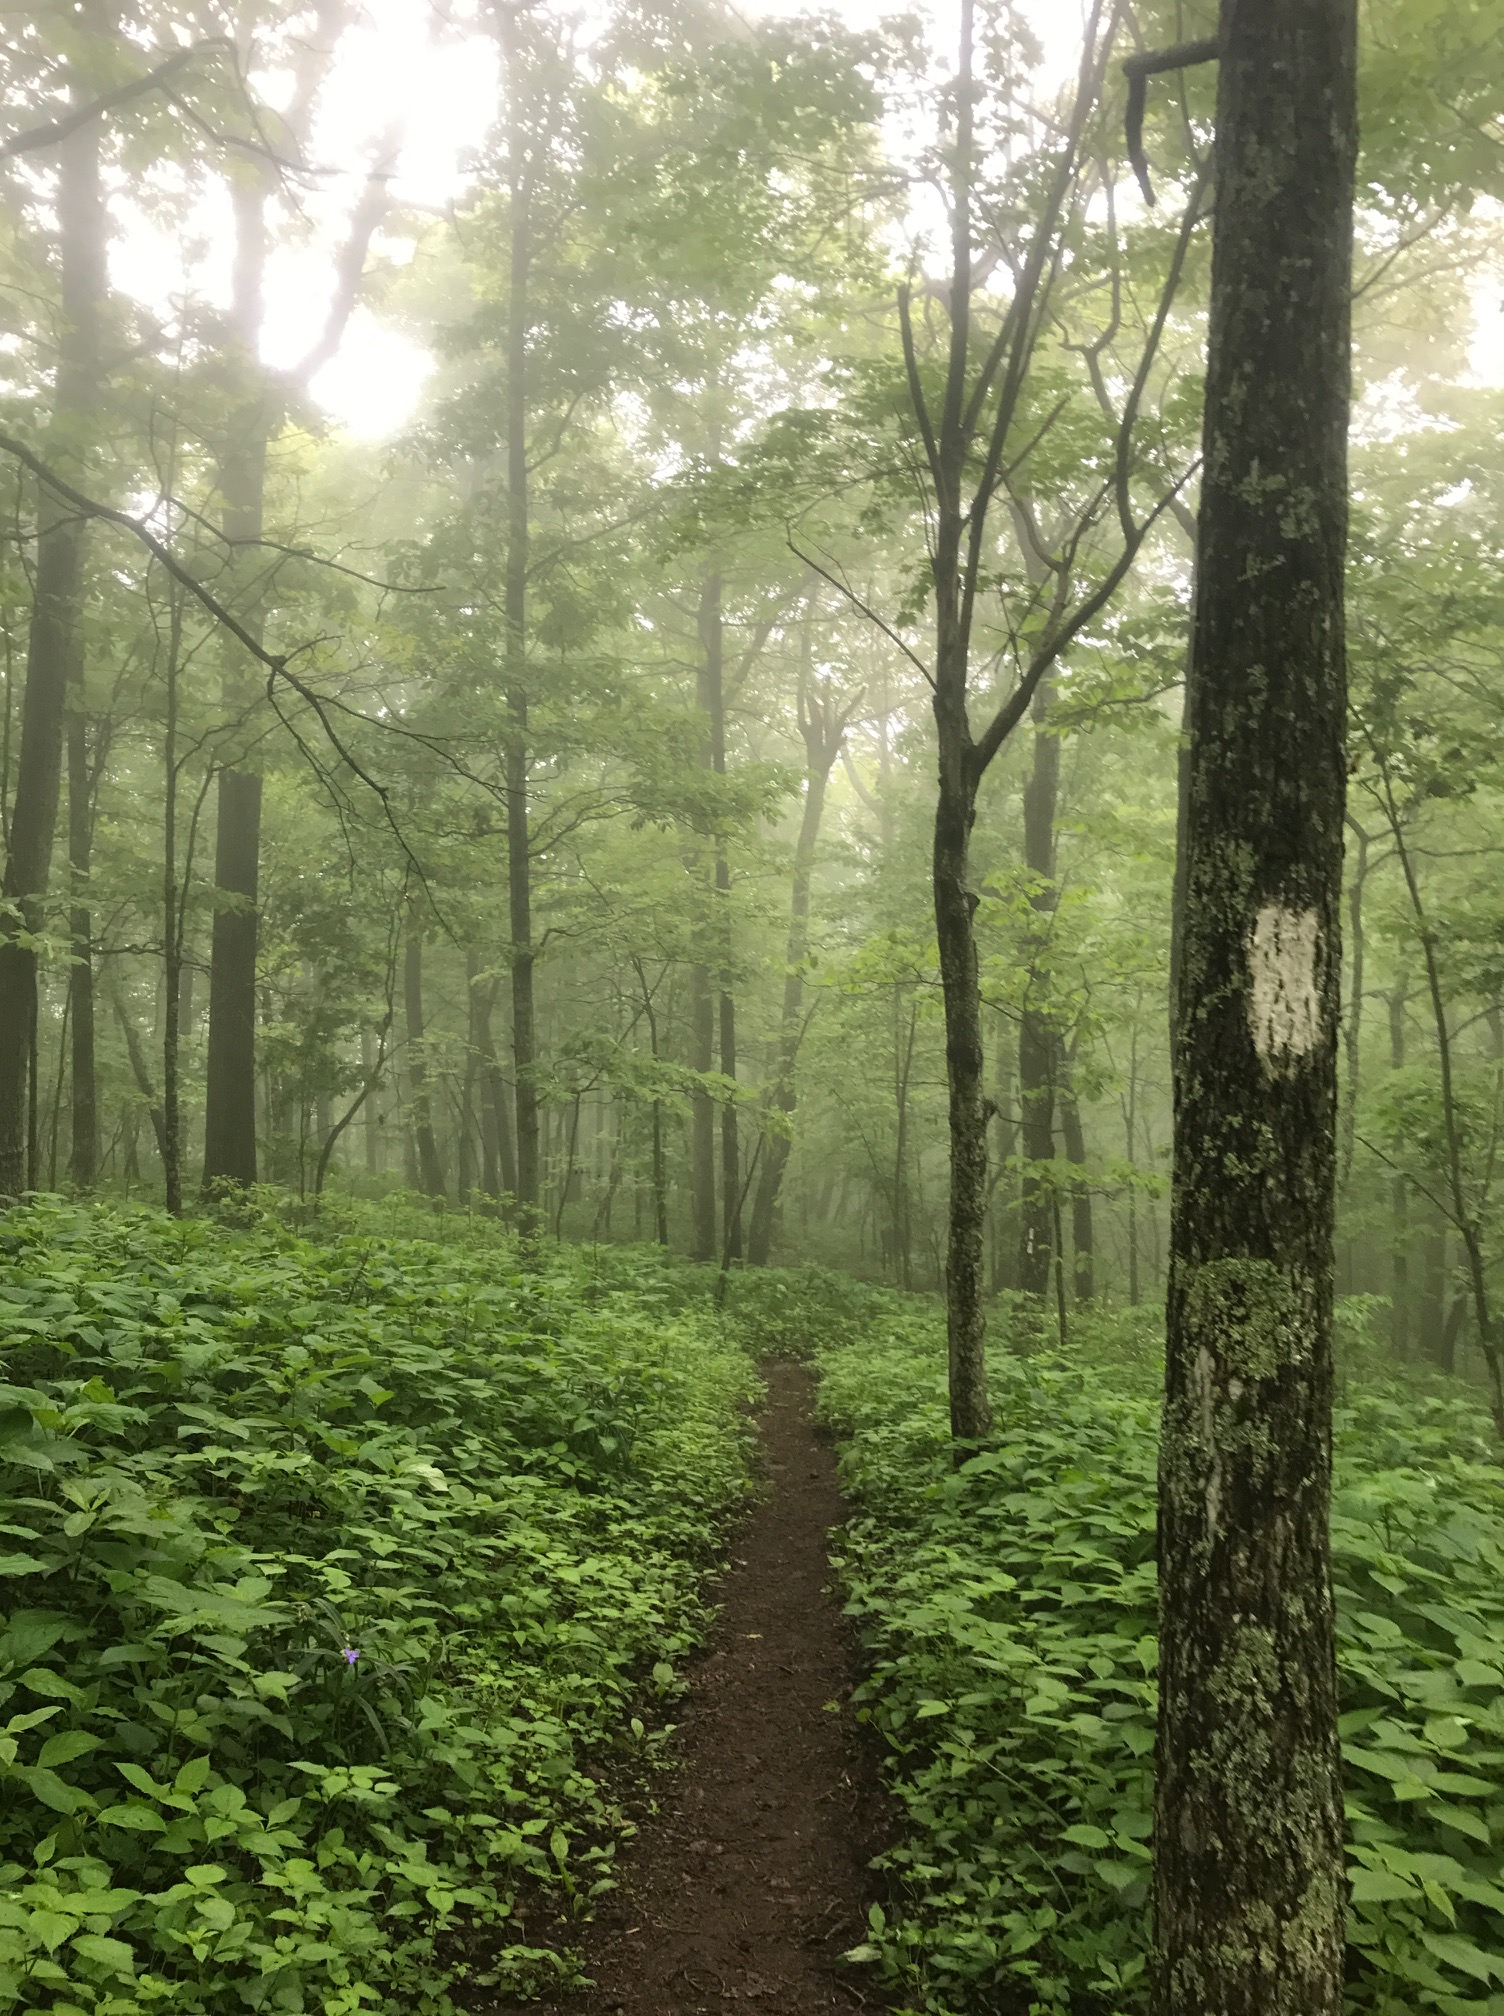 The Appalachian Trail runs from Georgia to Maine and is recognizable by its signature white blazes.